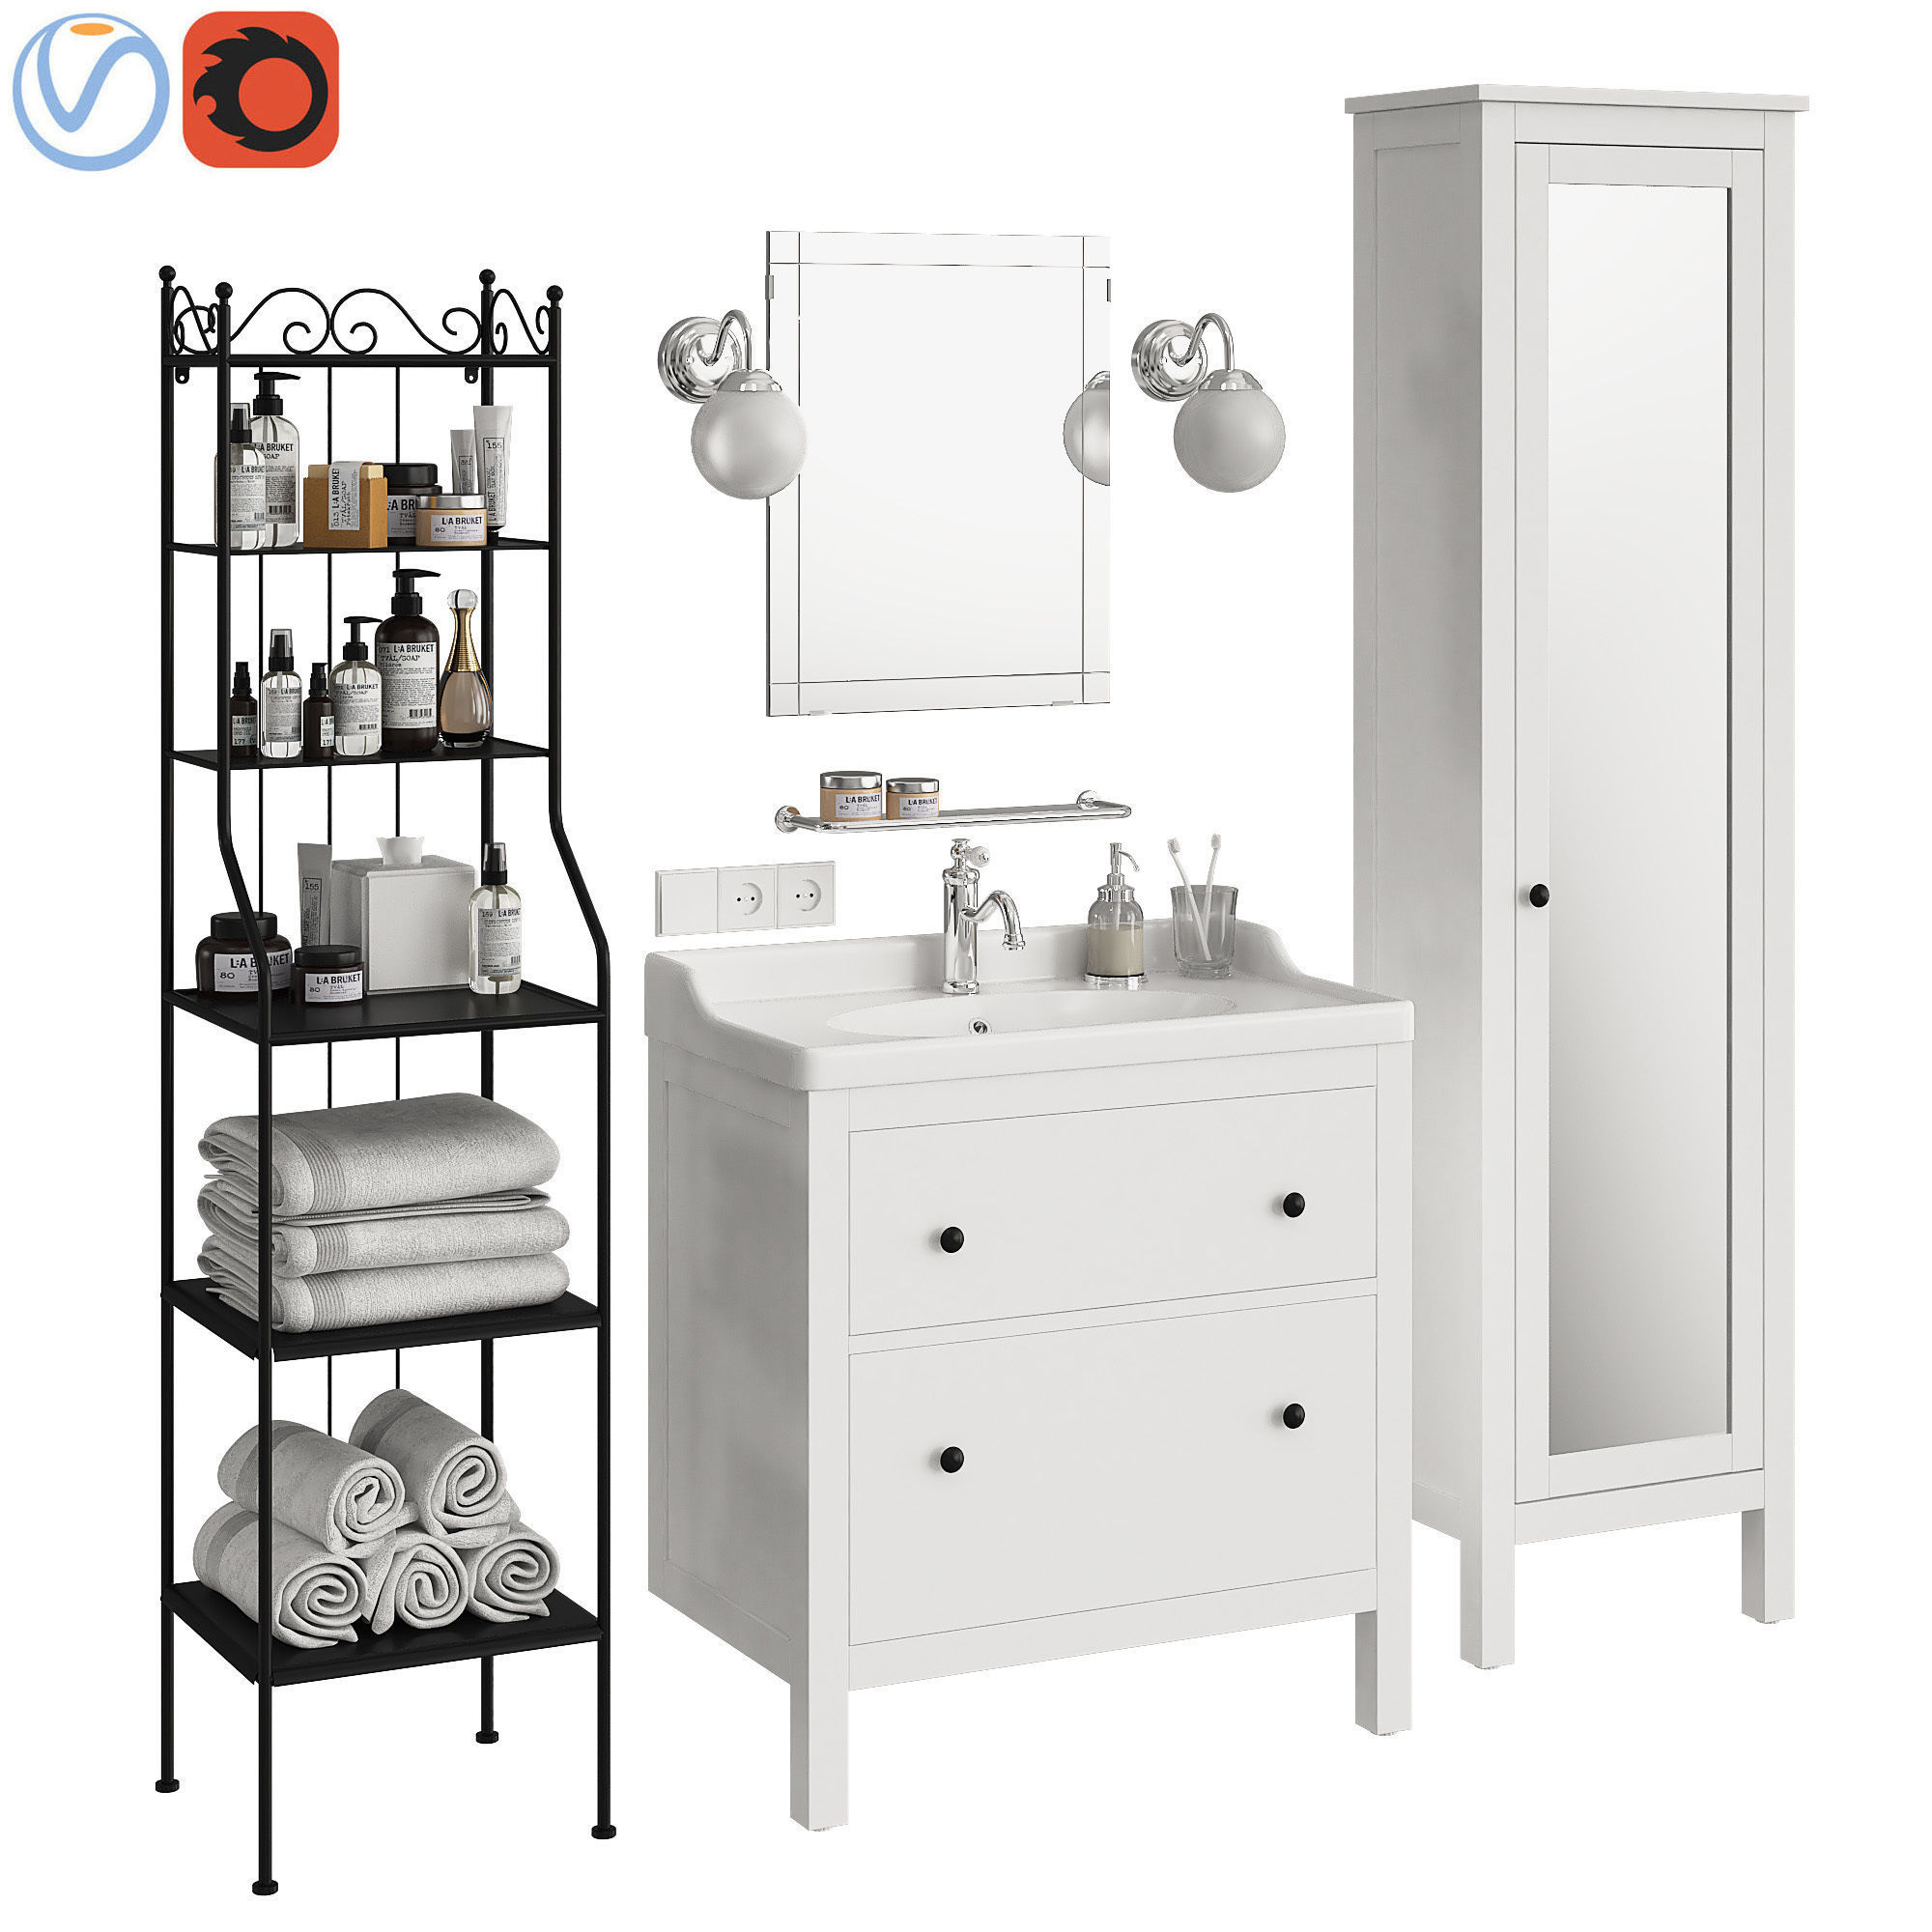 online retailer 5ee07 37990 Ikea Hemnes bathroom | 3D model